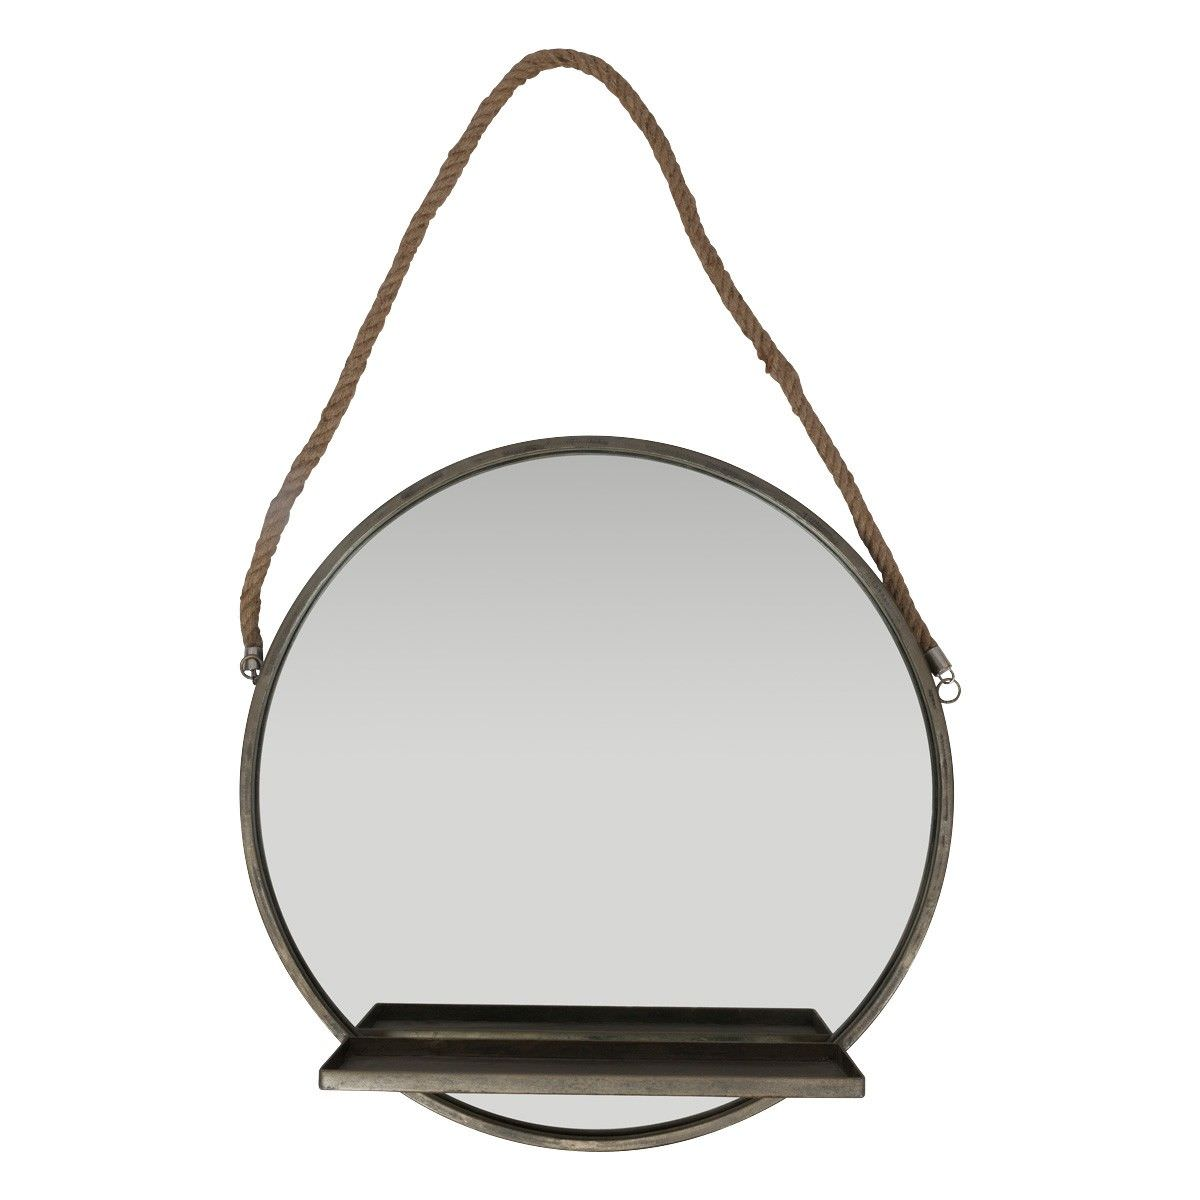 Murray Metal Frame Round Wall Mirror with Shelf, 56cm